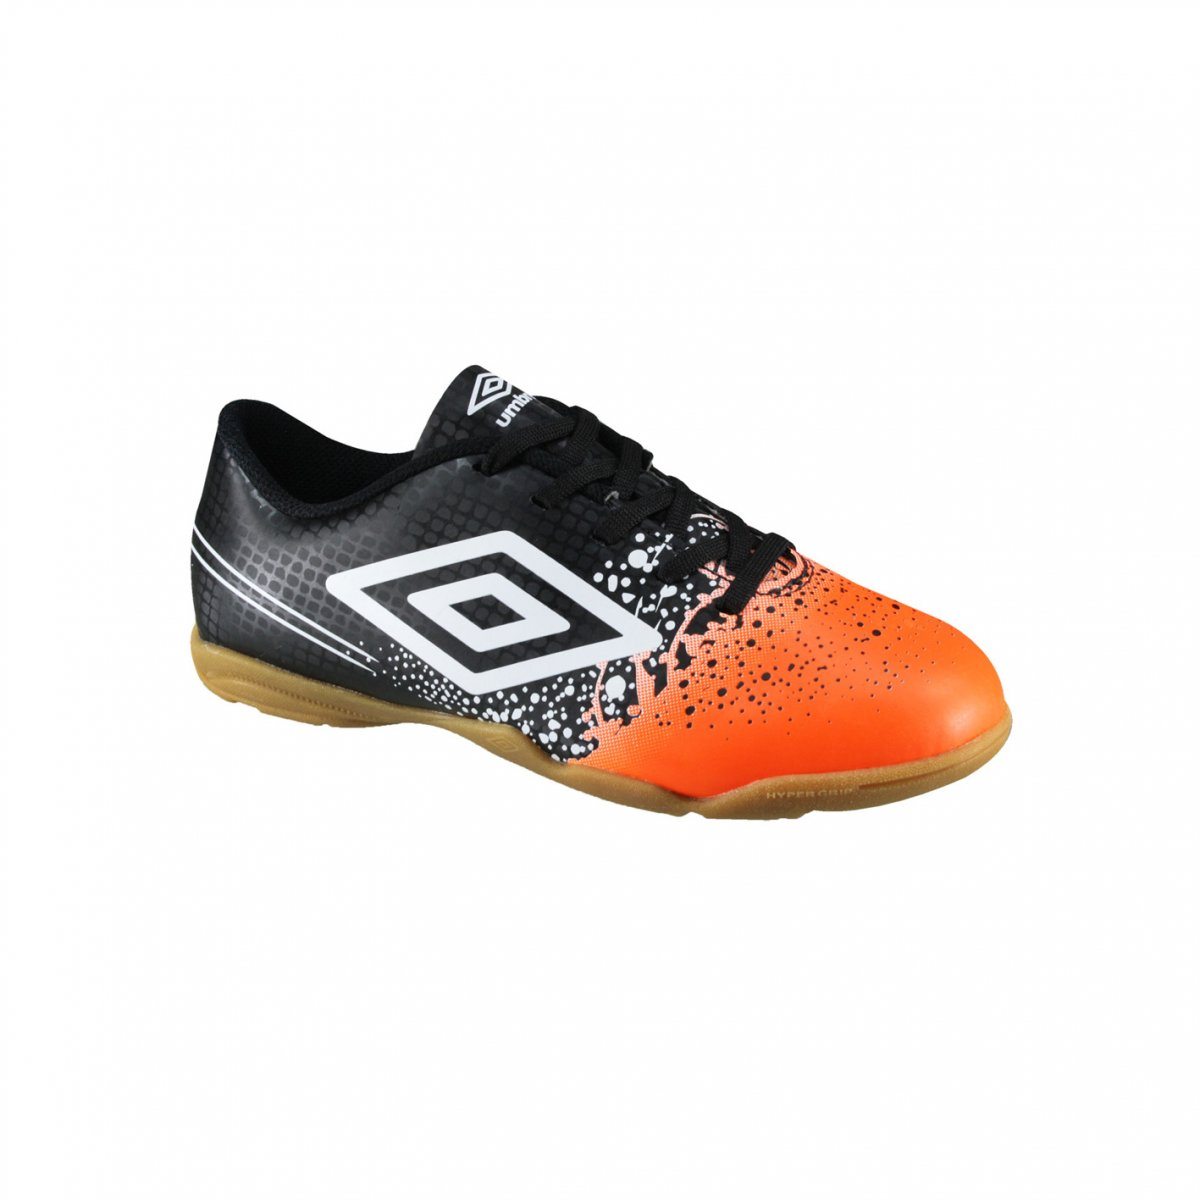 8386fb3415 Indoor Infantil Umbro Wave Jr OF82043-162 Preto Laranja Branco